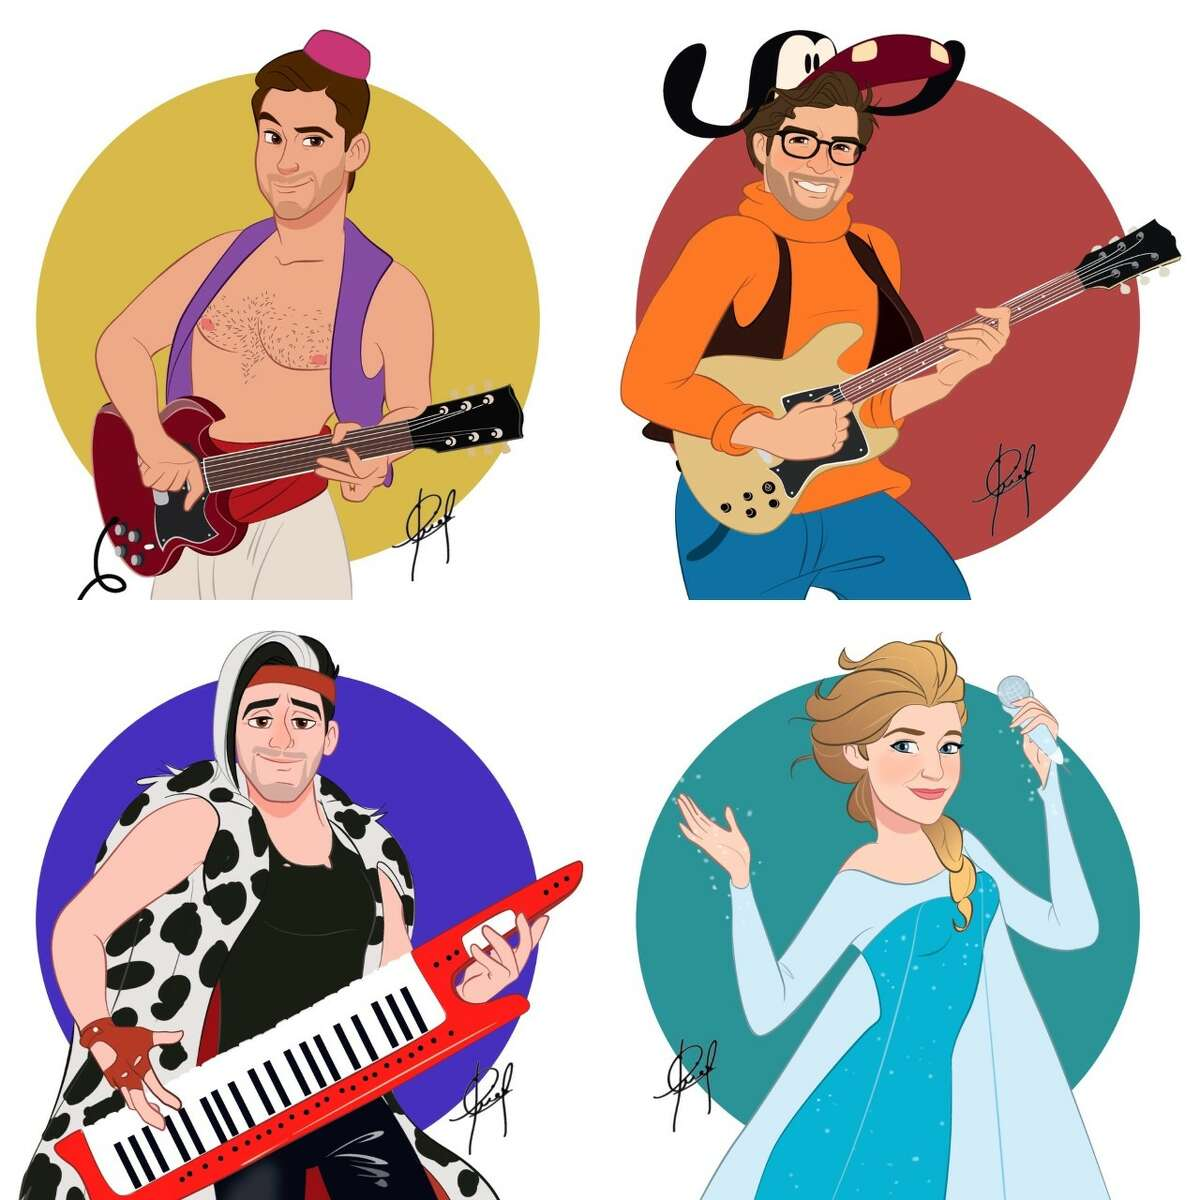 7:30 p.m. Wednesday, July 22 The Little Mermen are a New York City-based Disney cover band that play the hits from